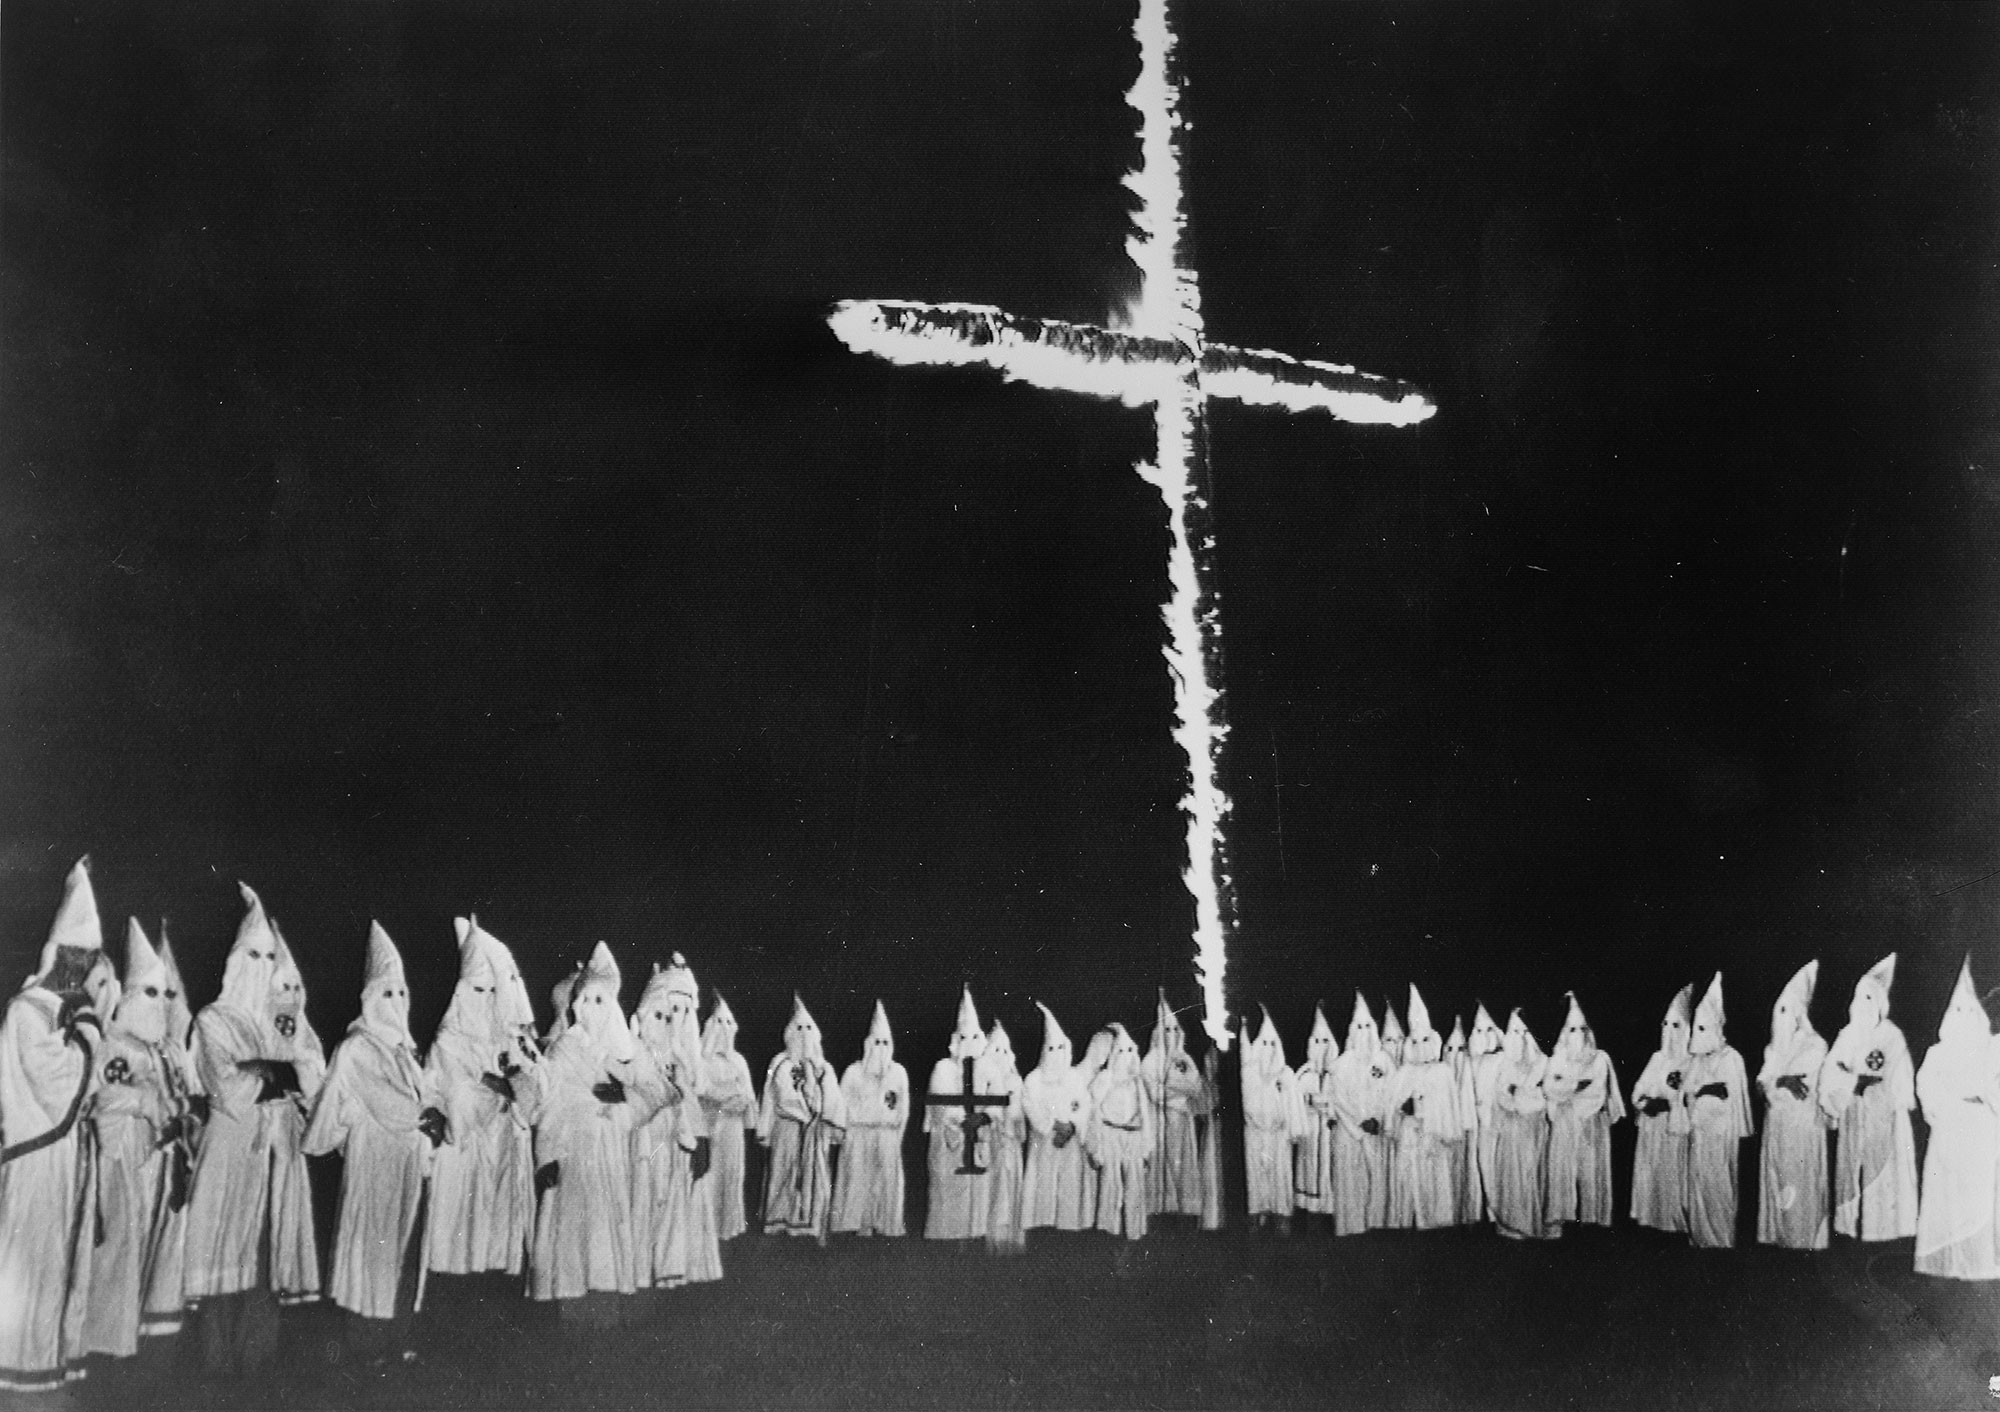 the history of the ku klux klan and how it affected america How the ku klux klan (kkk) changed america  they kill more black people in one week than in the entire history of the klan  ku klux klan (kkk) is .